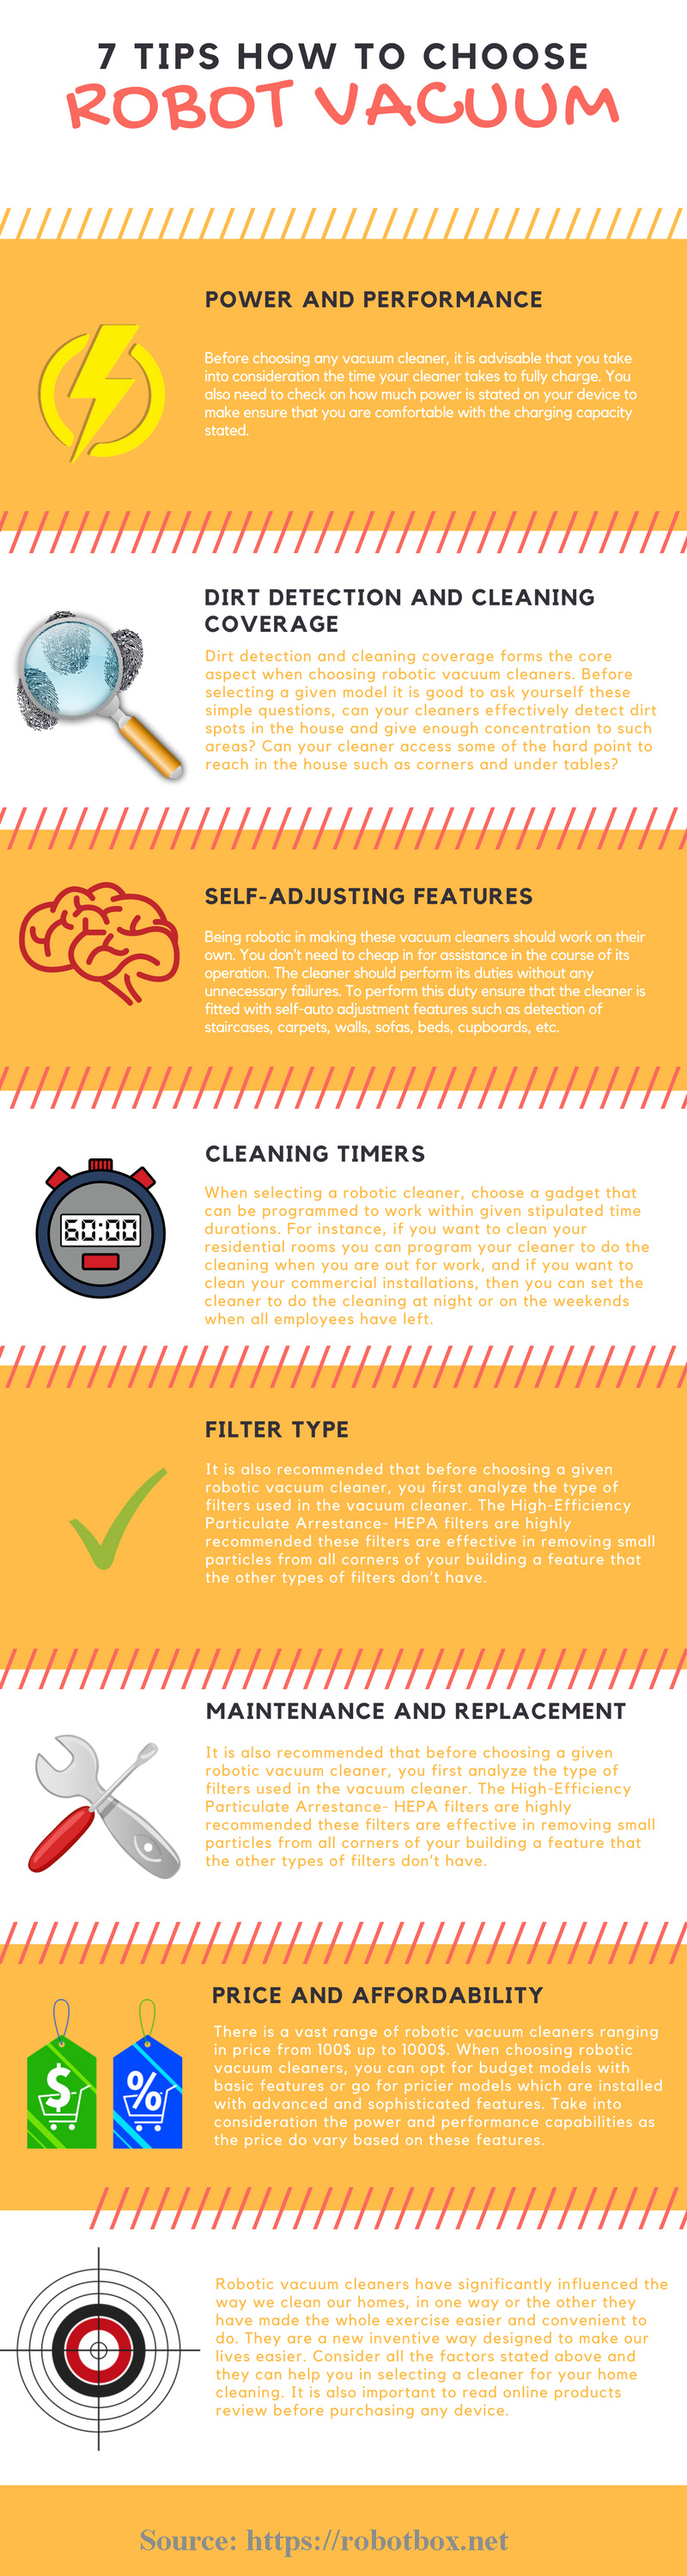 Ready to Buy a Robotic Vacuum Cleaner? 7 Tips on How to Choose - Infographic